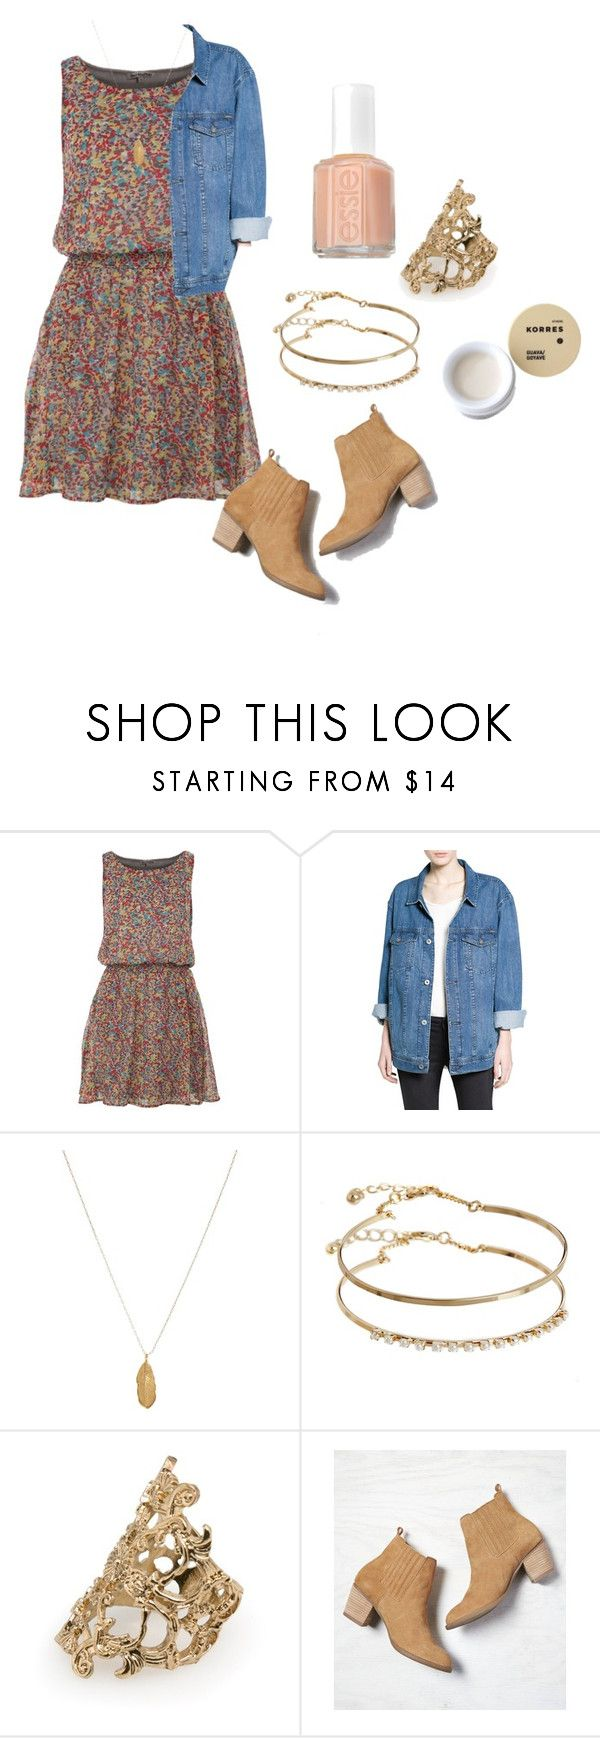 """Allison Argent Summer Outfit"" by zoegeorgiou2001 on Polyvore featuring Best Mountain, MANGO, Orelia, ASOS, Essie, Korres, American Eagle Outfitters, TeenWolf and allisonargent"